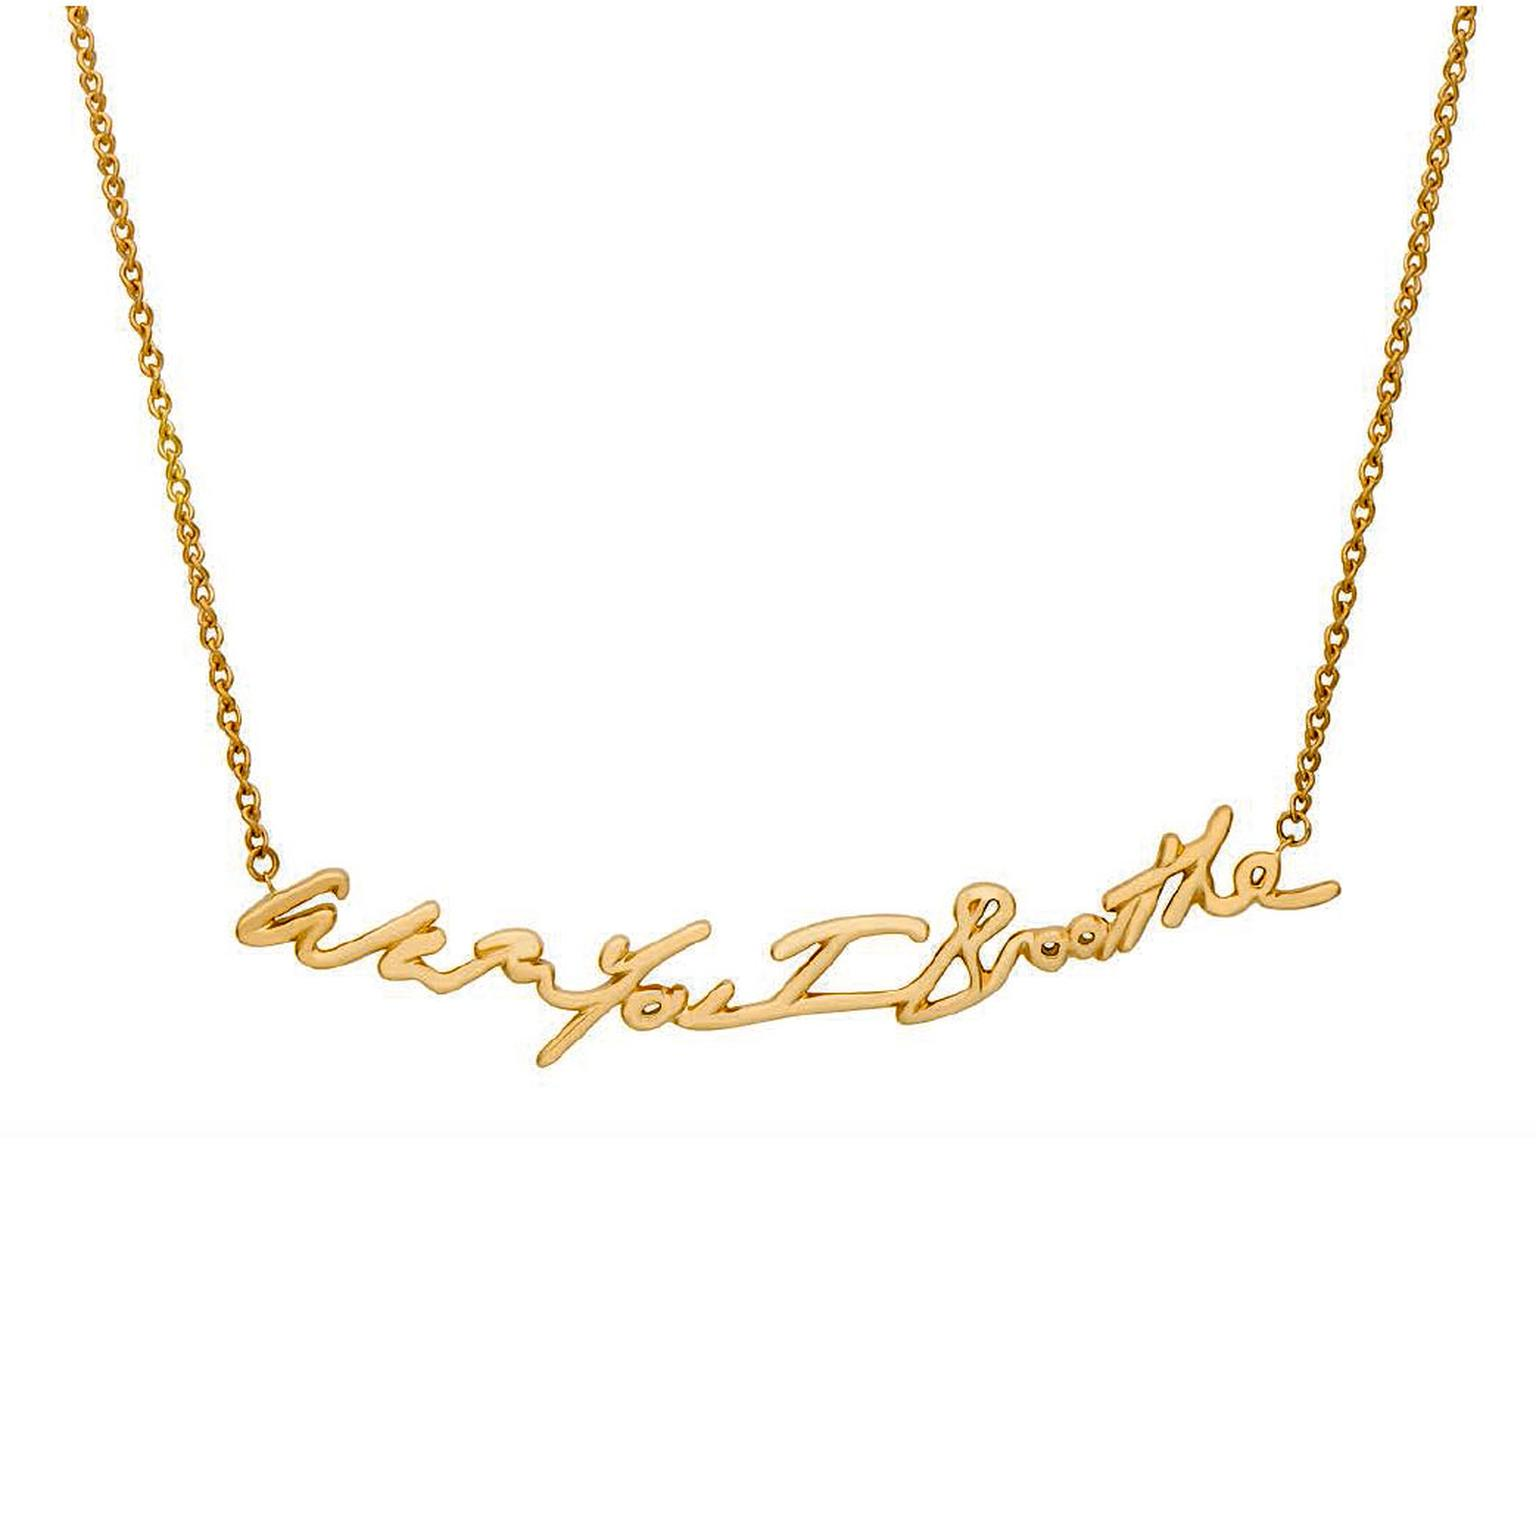 Tracey Emin With You I Breathe necklace